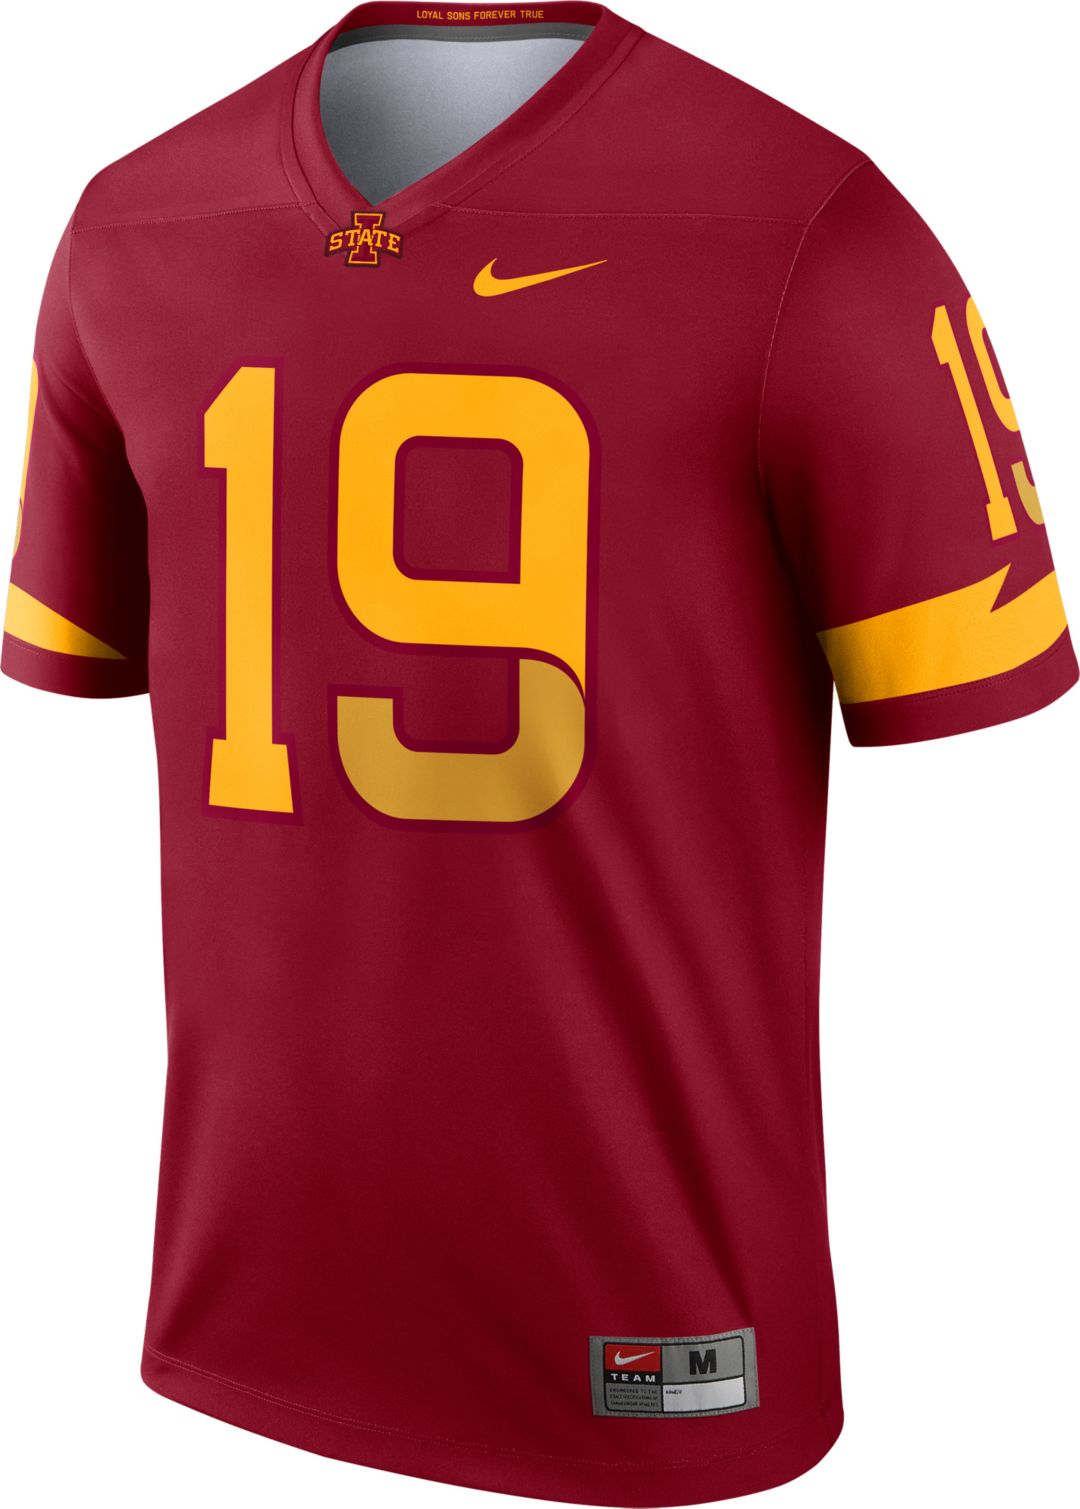 half off 22bb0 f2445 Nike Men's Iowa State Cyclones #19 Cardinal Dri-FIT Legend Football Jersey